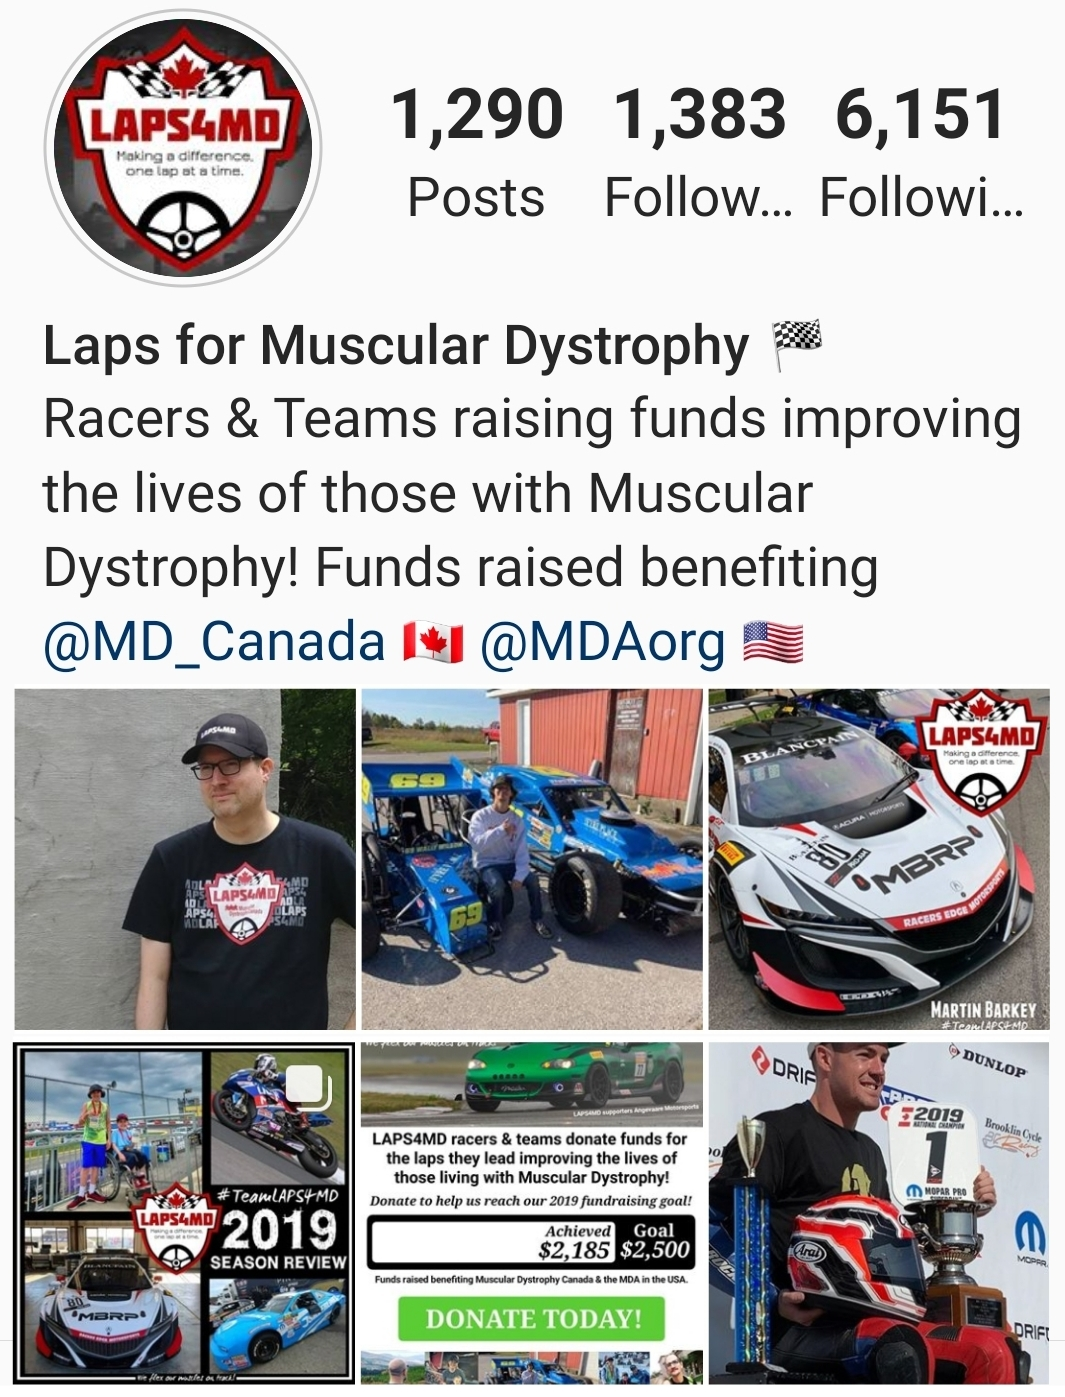 FOLLOW LAPS4MD ON INSTAGRAM